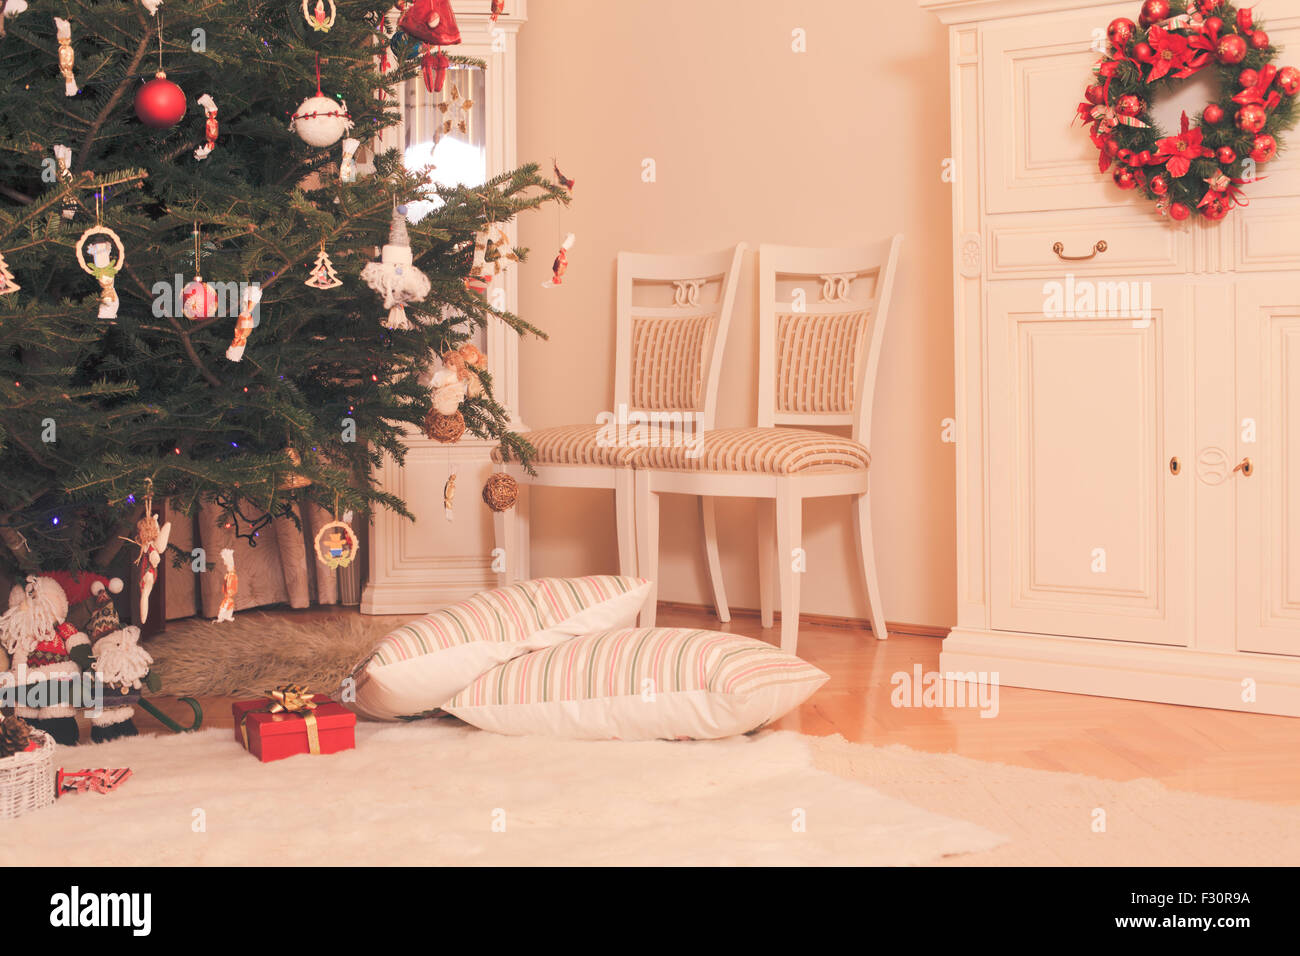 Christmas Tree In Living Room Stock Photo Royalty Free Image 87914102 Alamy